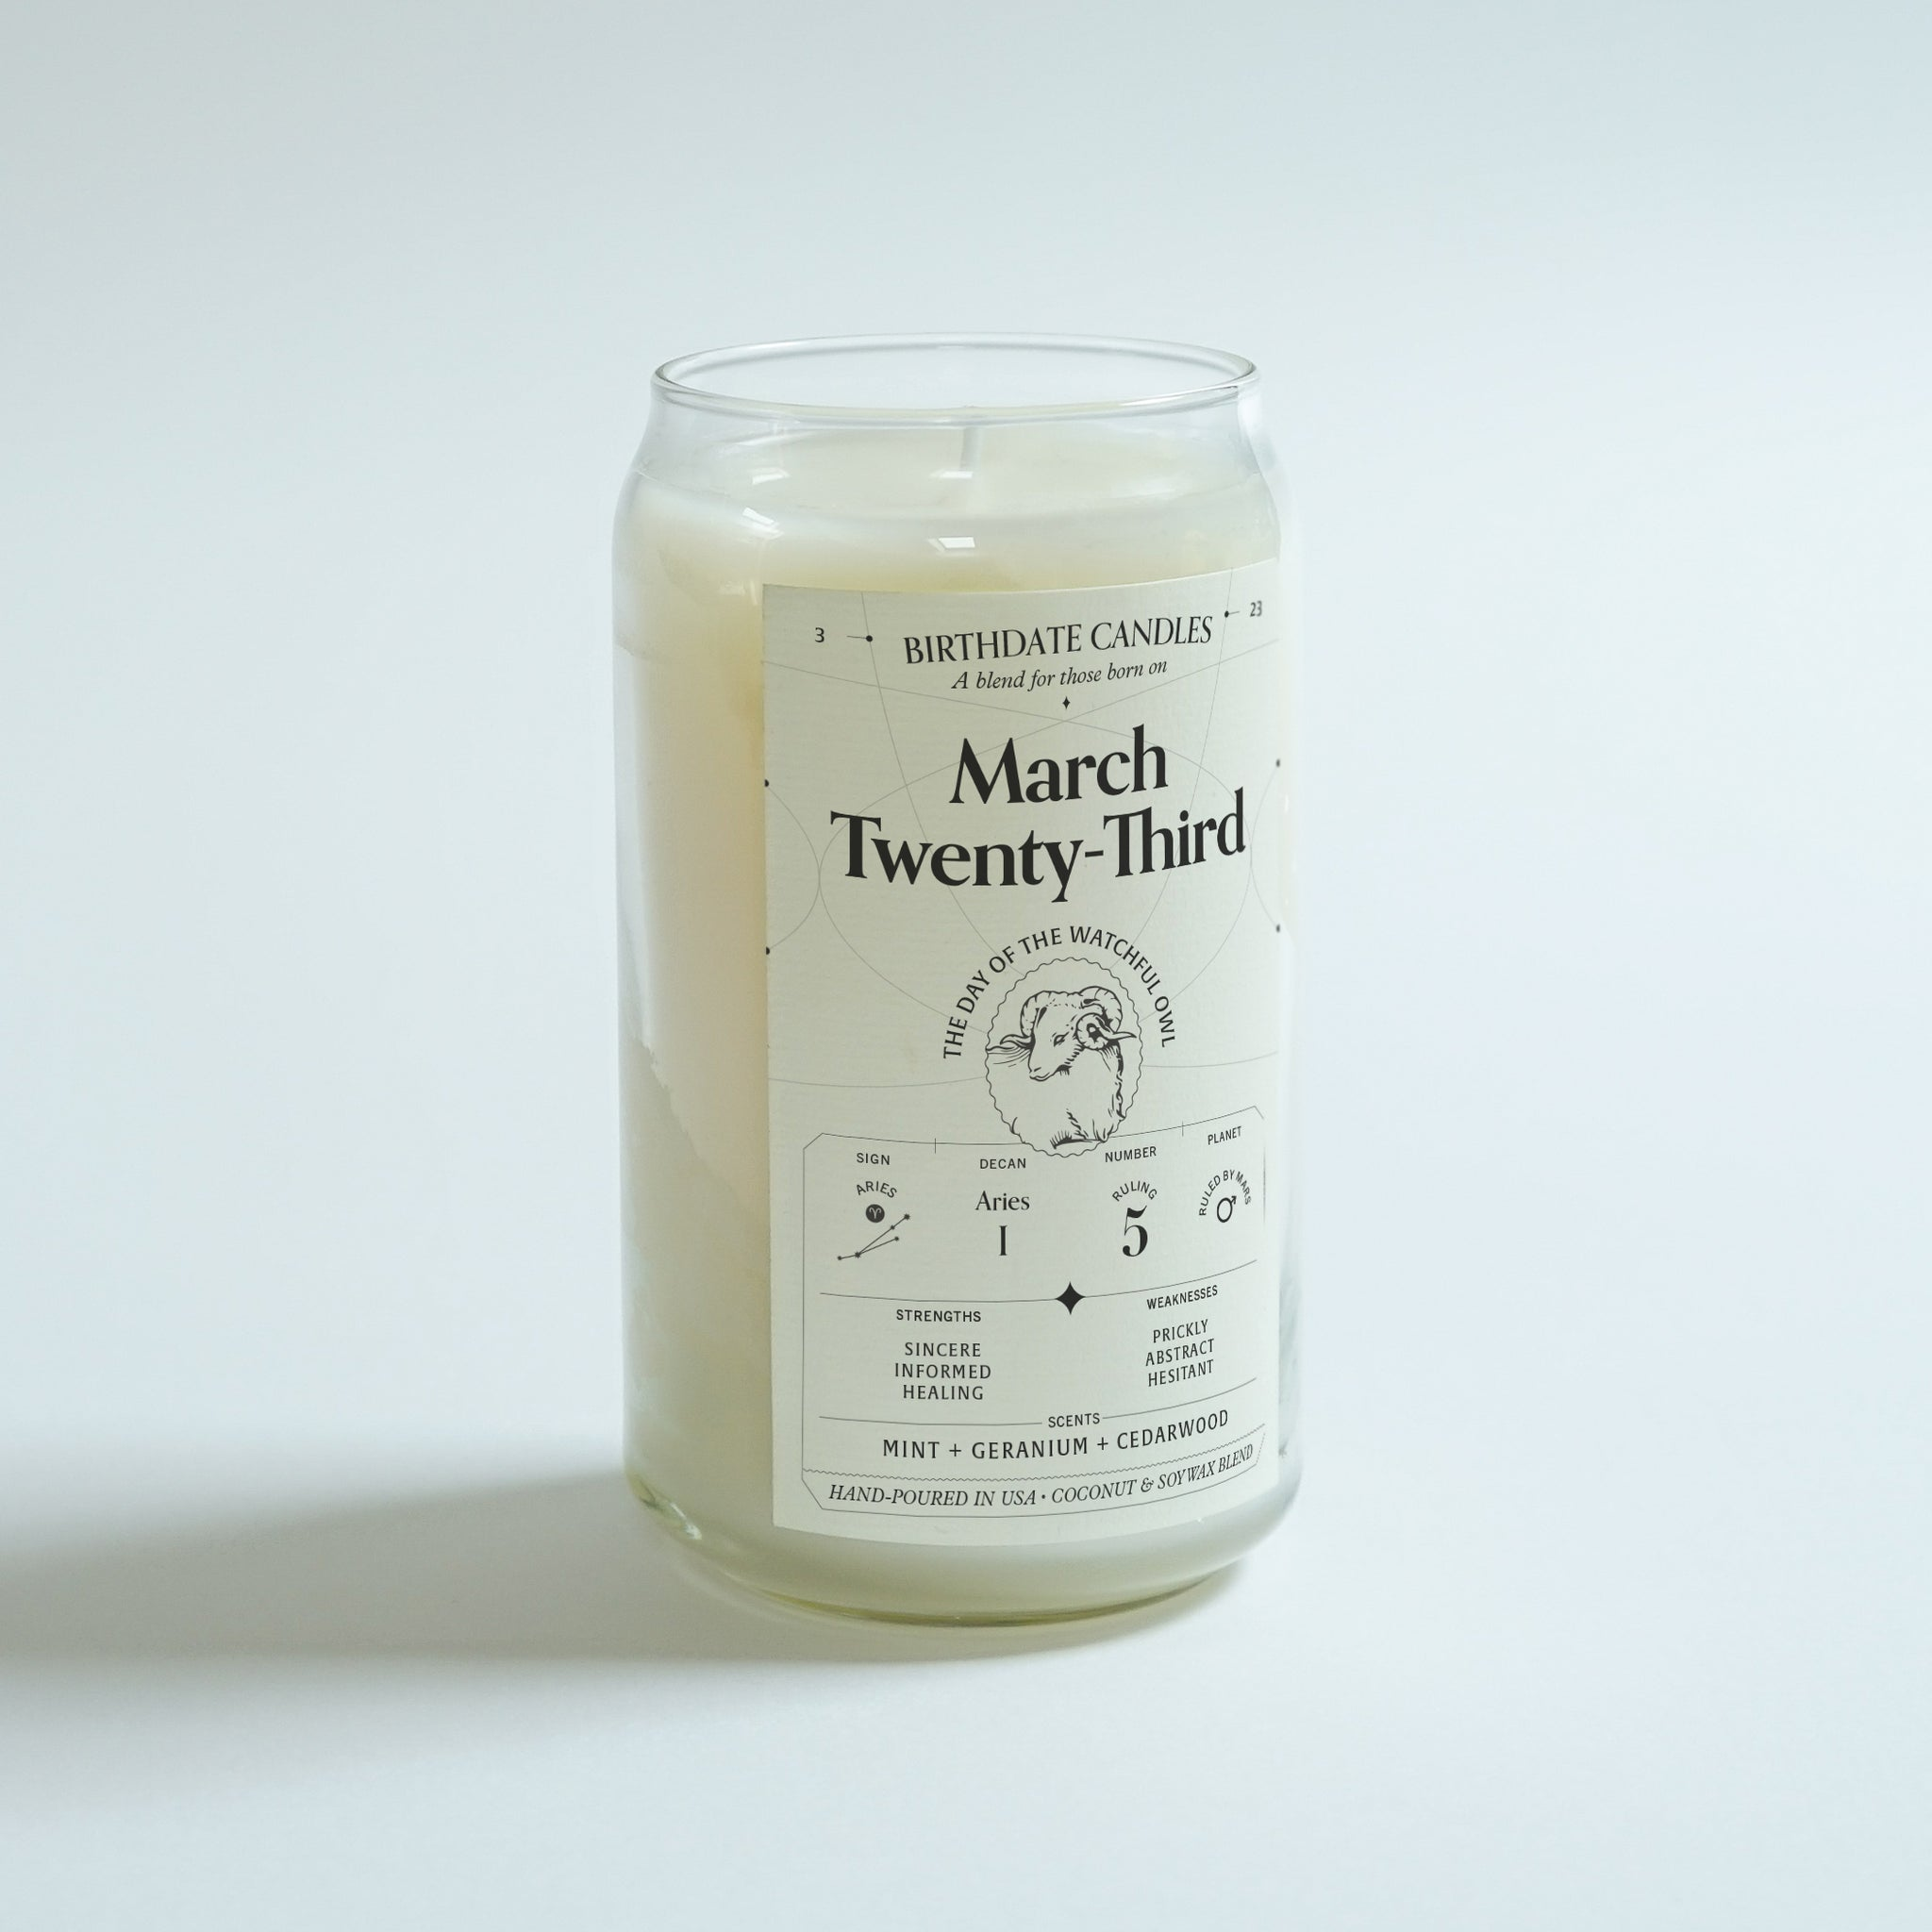 The March Twenty-Third Candle